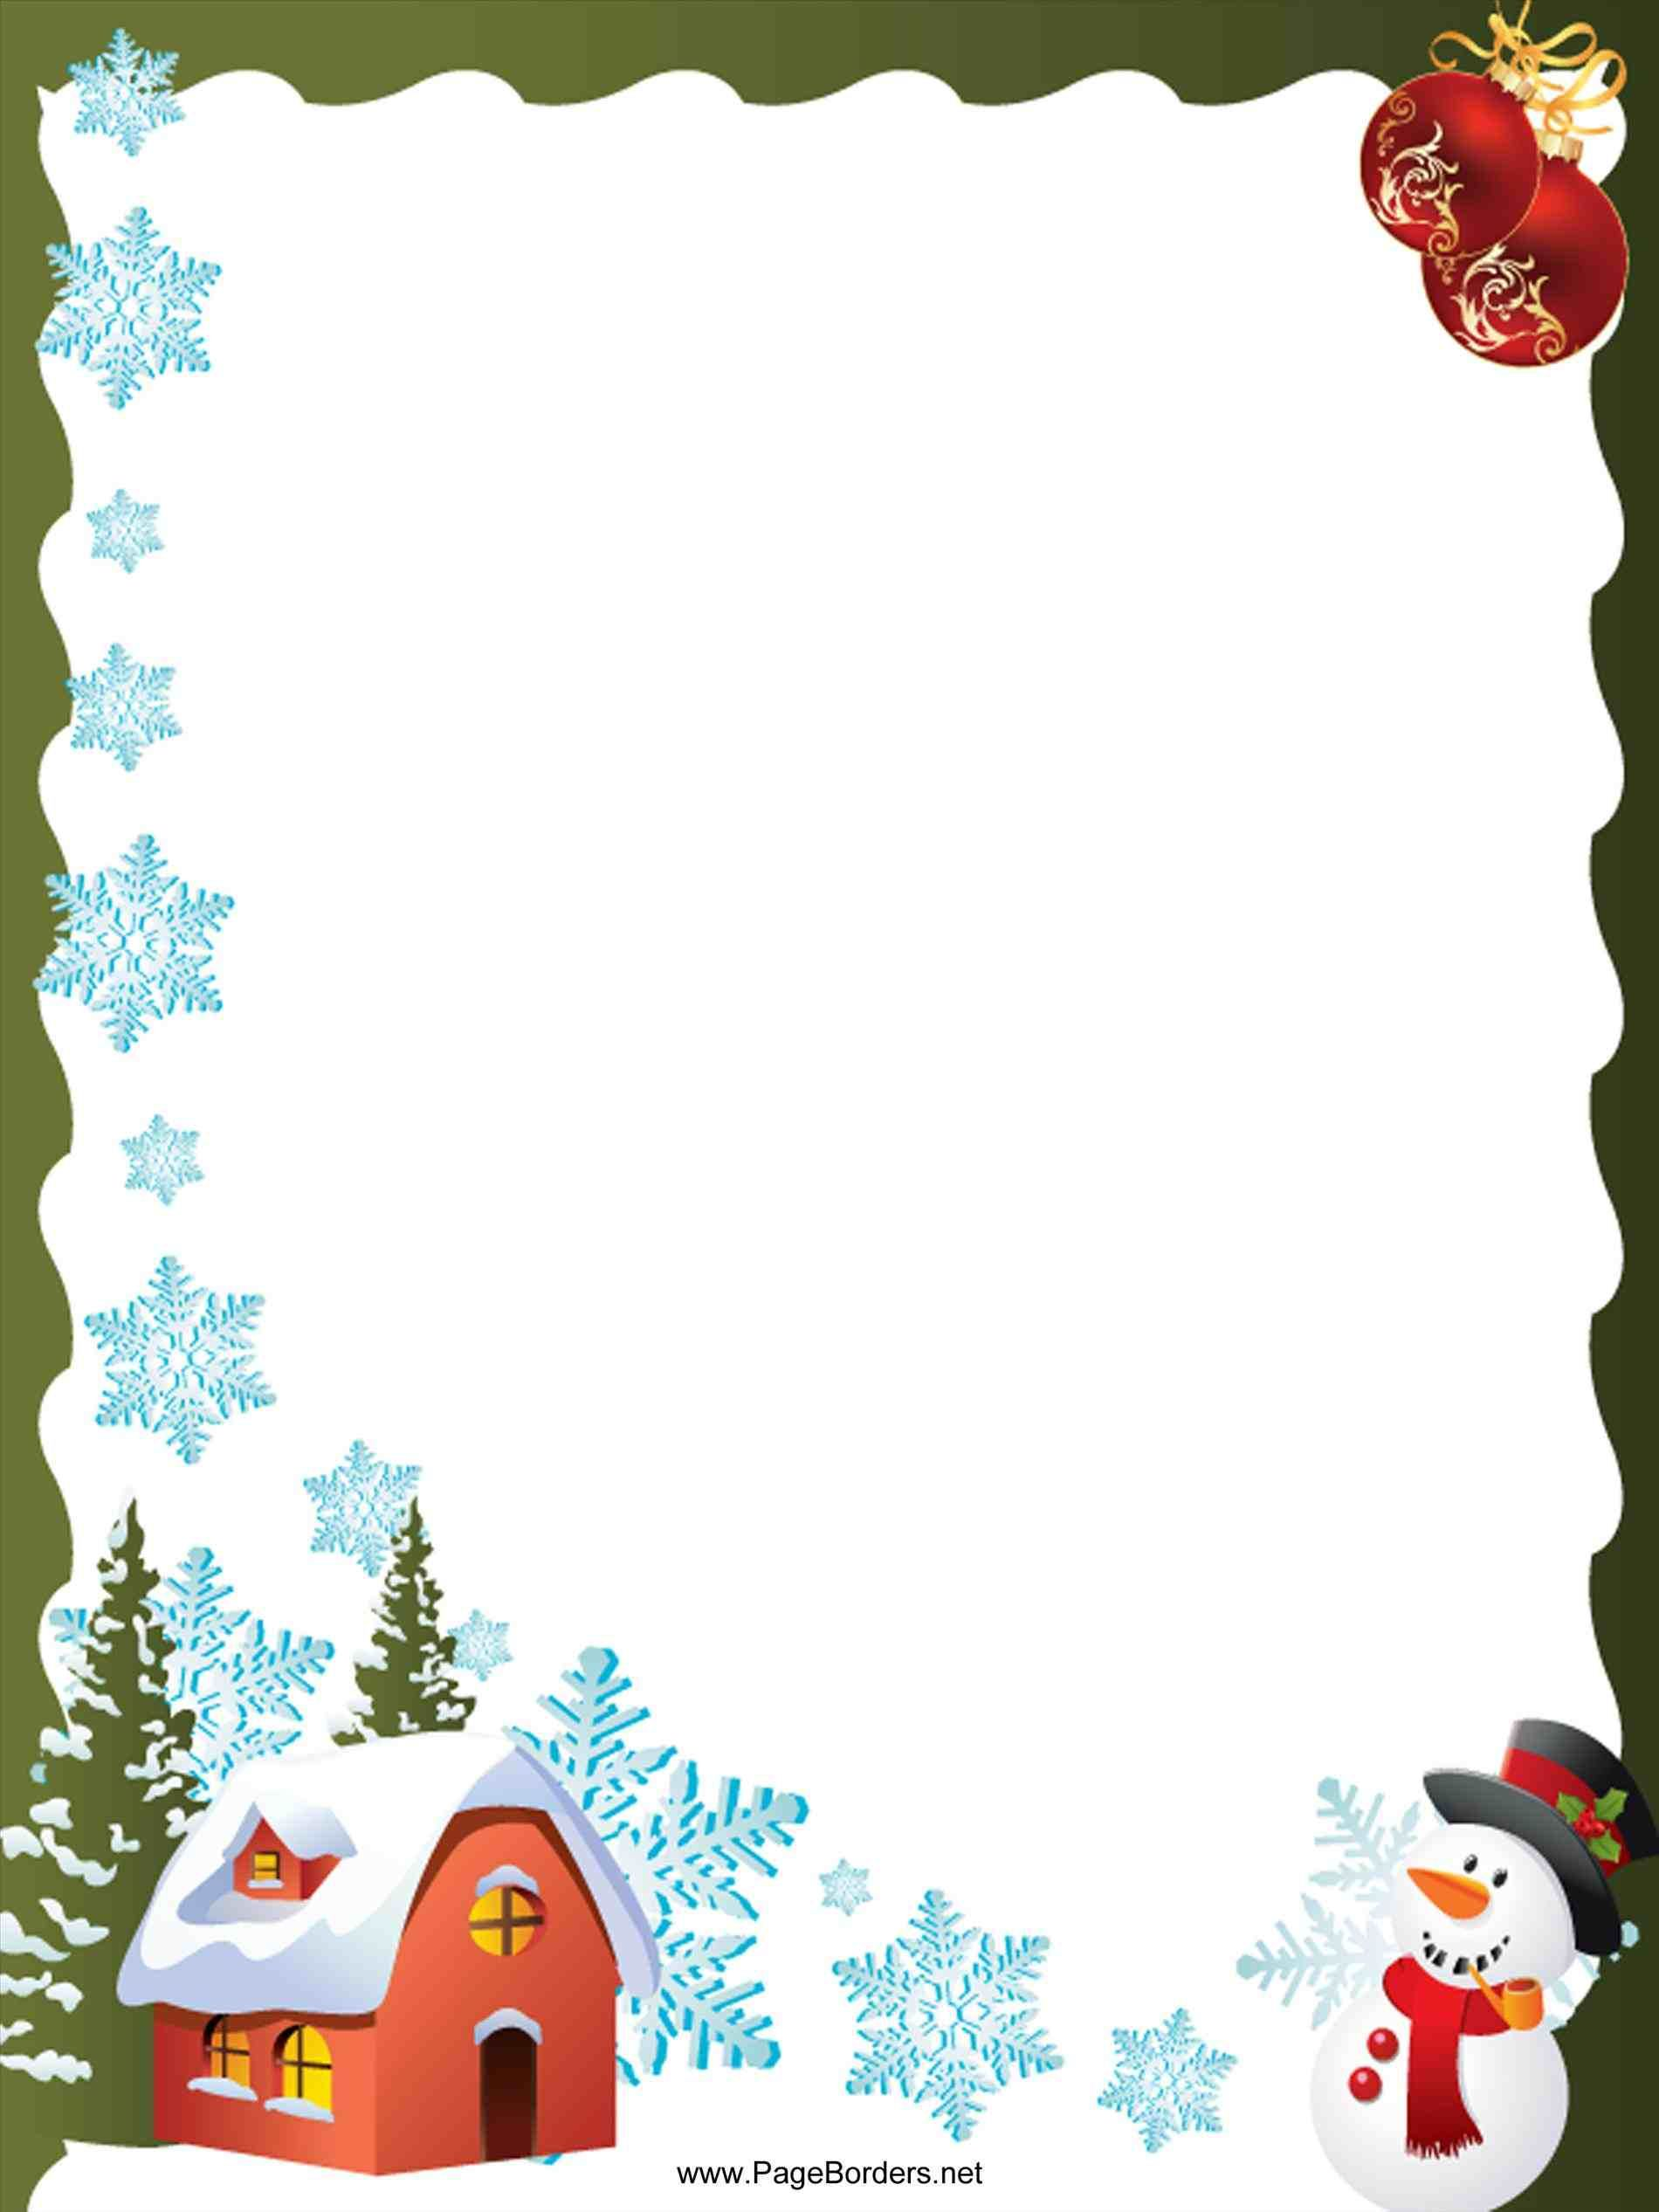 New Post Free Christmas Borders And Frames Clip Art Decors Ideas